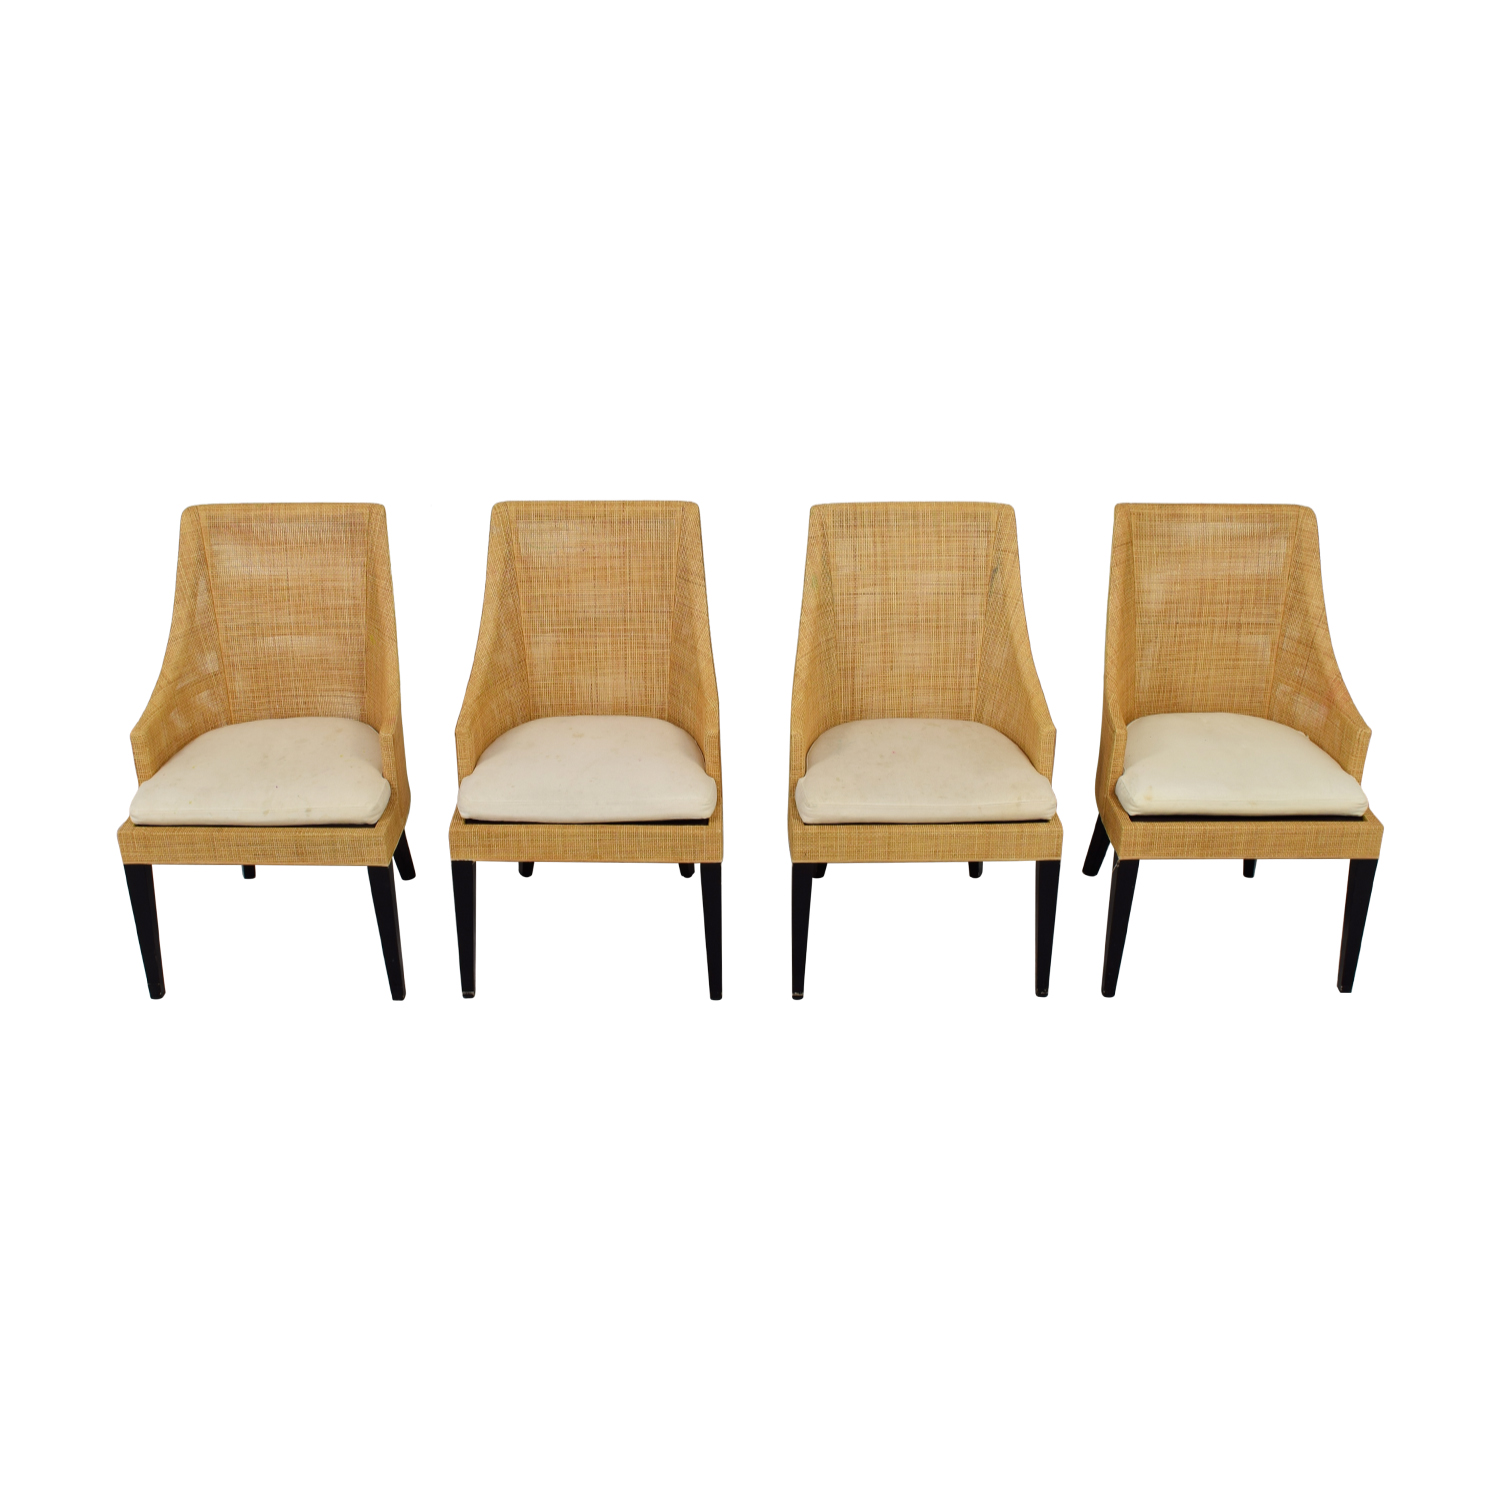 West Elm West Elm Dining Chairs discount